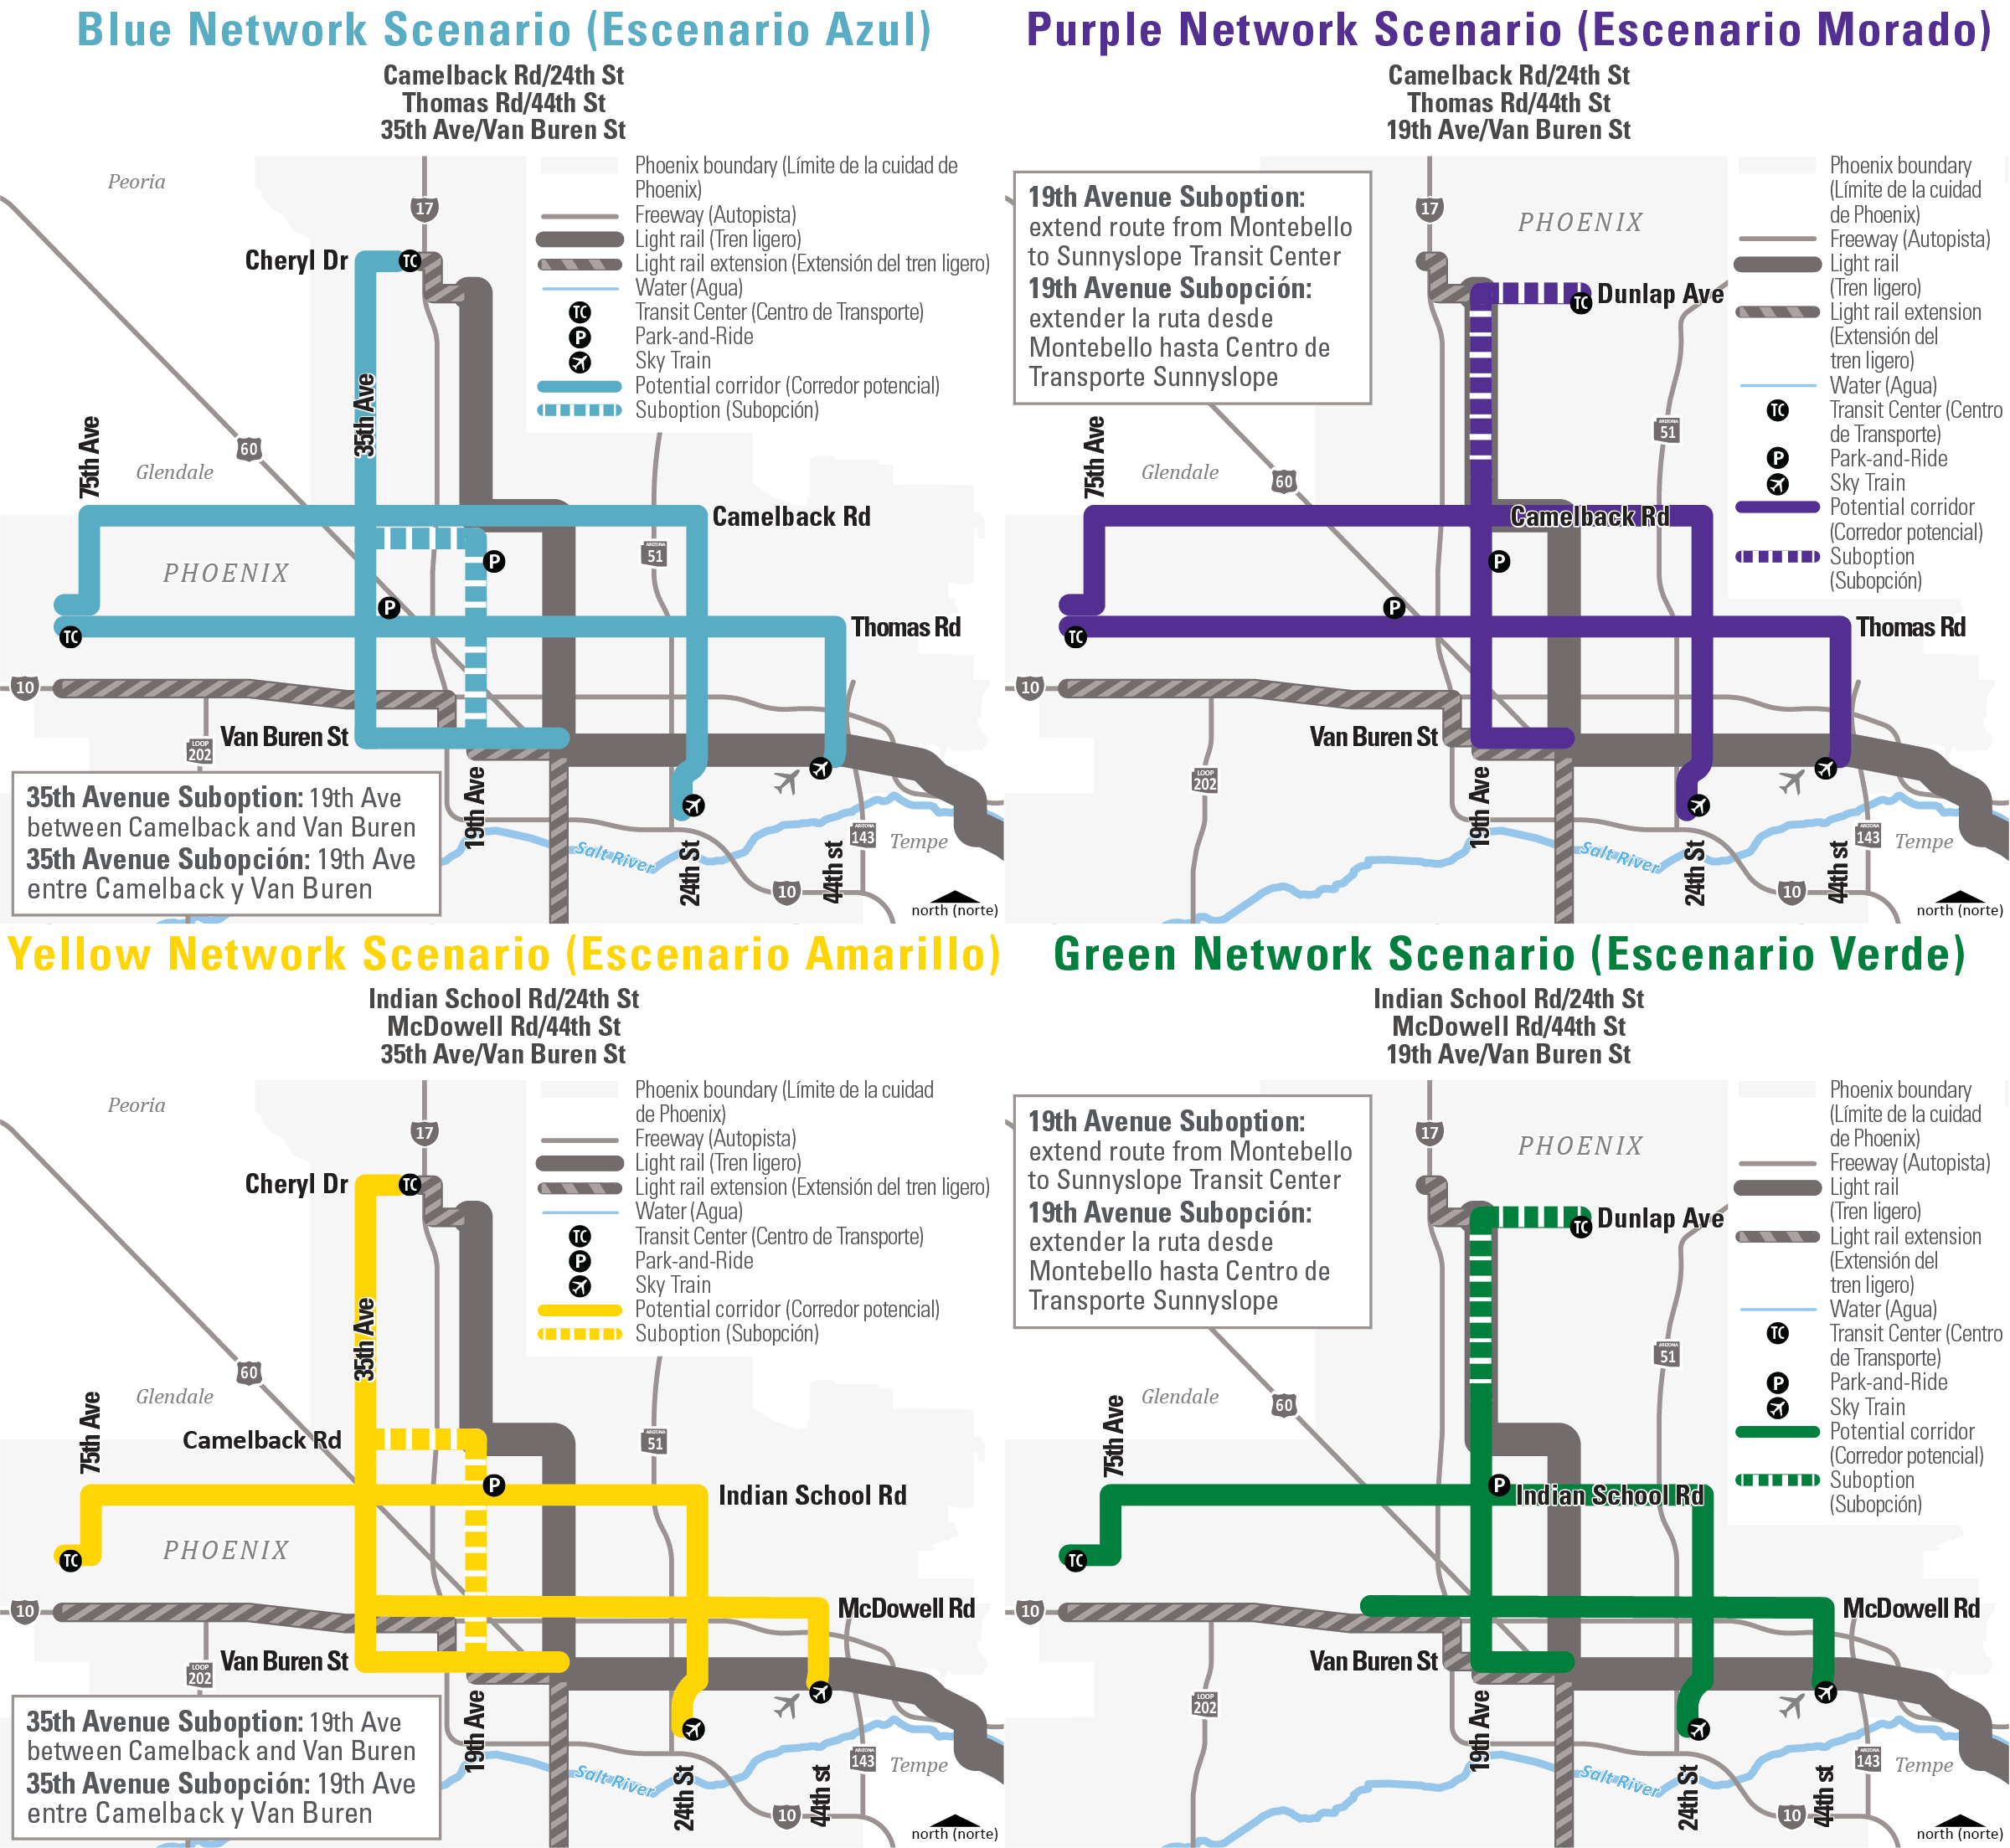 Potential Network Scenarios Map: Camelback Rd/24th St, Thomas Rd/44th St, 35th Ave/Van Buren St (Blue Network Scenario, Escenario Azul)- 35th Avenue Suboption: 19th Ave between Camelback and Van Buren (ES) 35th Avenue Subopción: 19th Ave entre Camelback y Van Buren;  Camelback Rd/24th St, Thomas Rd/44th St, 19th Ave/Van Buren St (Purple Network Scenario, Escenario Morado)- 19th Avenue Suboption: extend route from Montebello to Sunnyslope Transit Center (ES) 19th Avenue Subopción: extender la ruta desde Montebello hasta Centro de Transporte Sunnyslope;   Indian School Rd/24th St, McDowell Rd/44th St, 35th Ave/Van Buren St (Yellow Network Scenario, Escenario Amarillo)- 35th Avenue Suboption: 19th Ave between Camelback and Van Buren (ES) 35th Avenue Subopción: 19th Ave entre Camelback y Van Buren;  Indian School Rd/24th St, McDowell Rd/44th St, 19th Ave/Van Buren St (Green Network Scenario, Escenario Verde)- 19th Avenue Suboption: extend route from Montebello to Sunnyslope Transit Center (ES) 19th Avenue Subopción: extender la ruta desde Montebello hasta Centro de Transporte Sunnyslope